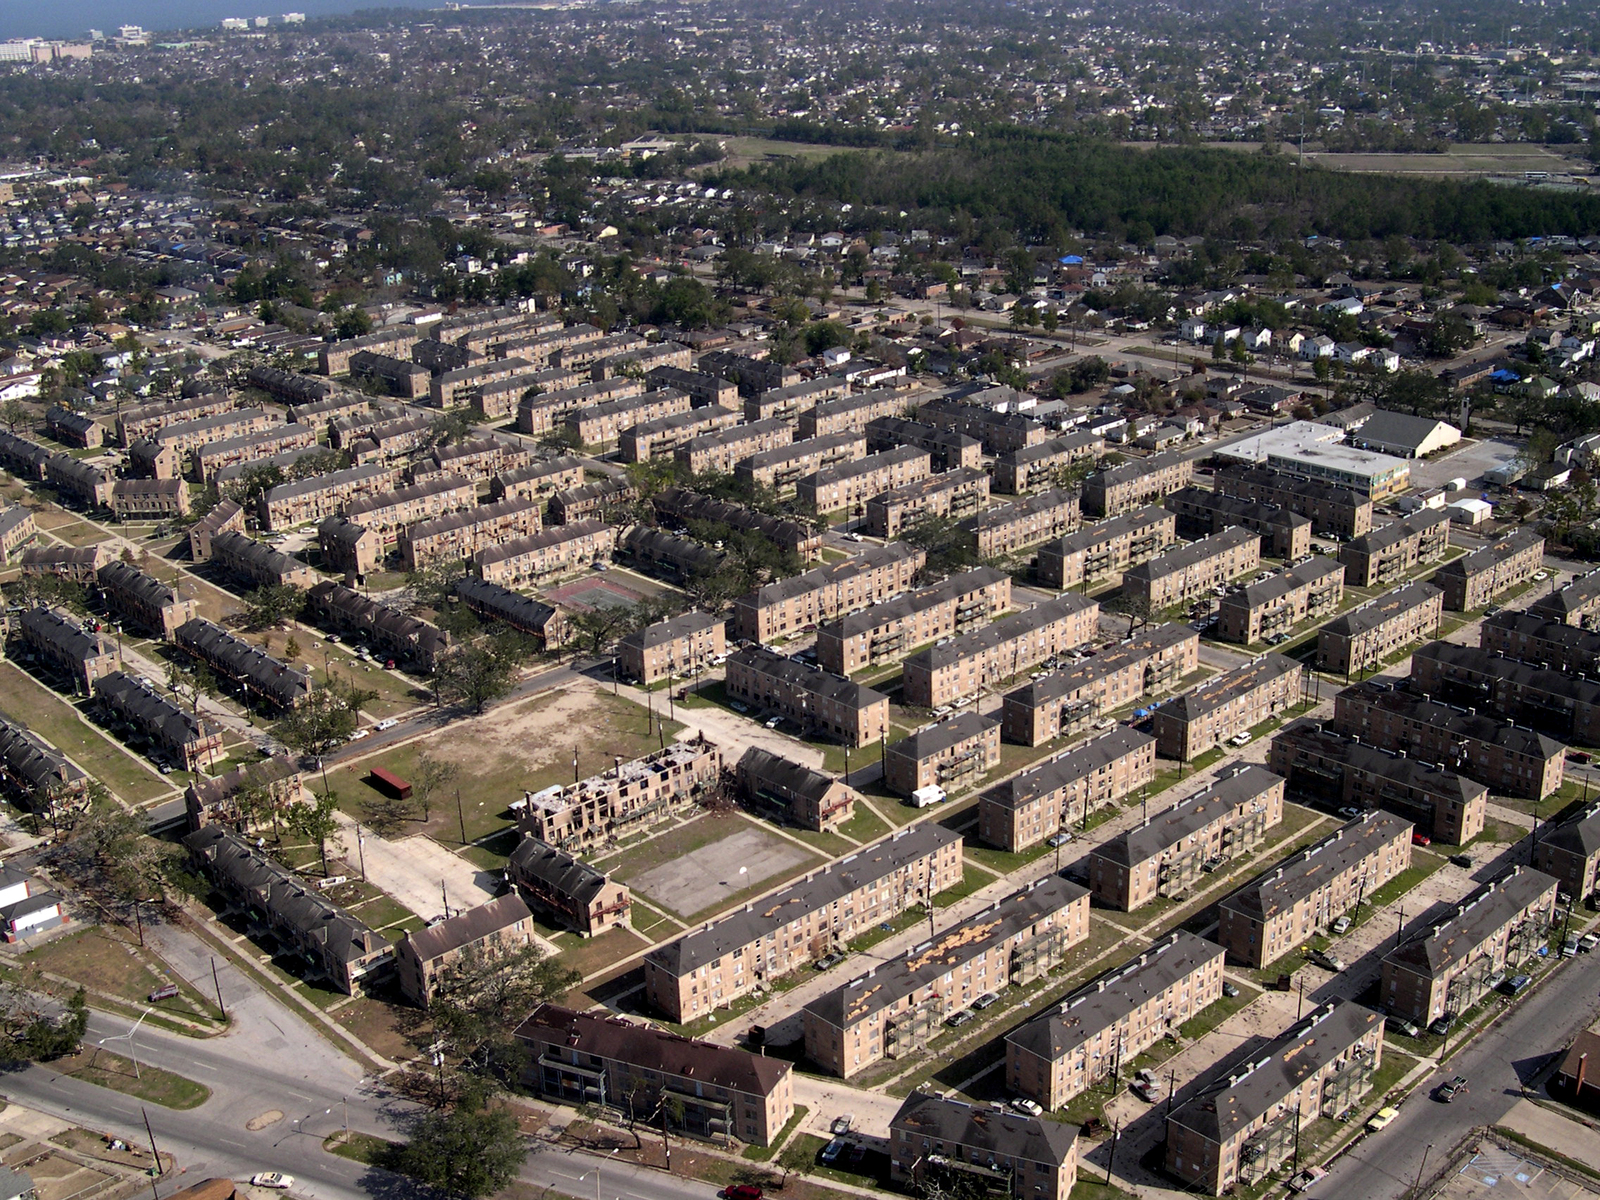 [Select views:]  New Orleans, Louisiana public housing, after Hurricane Katrina